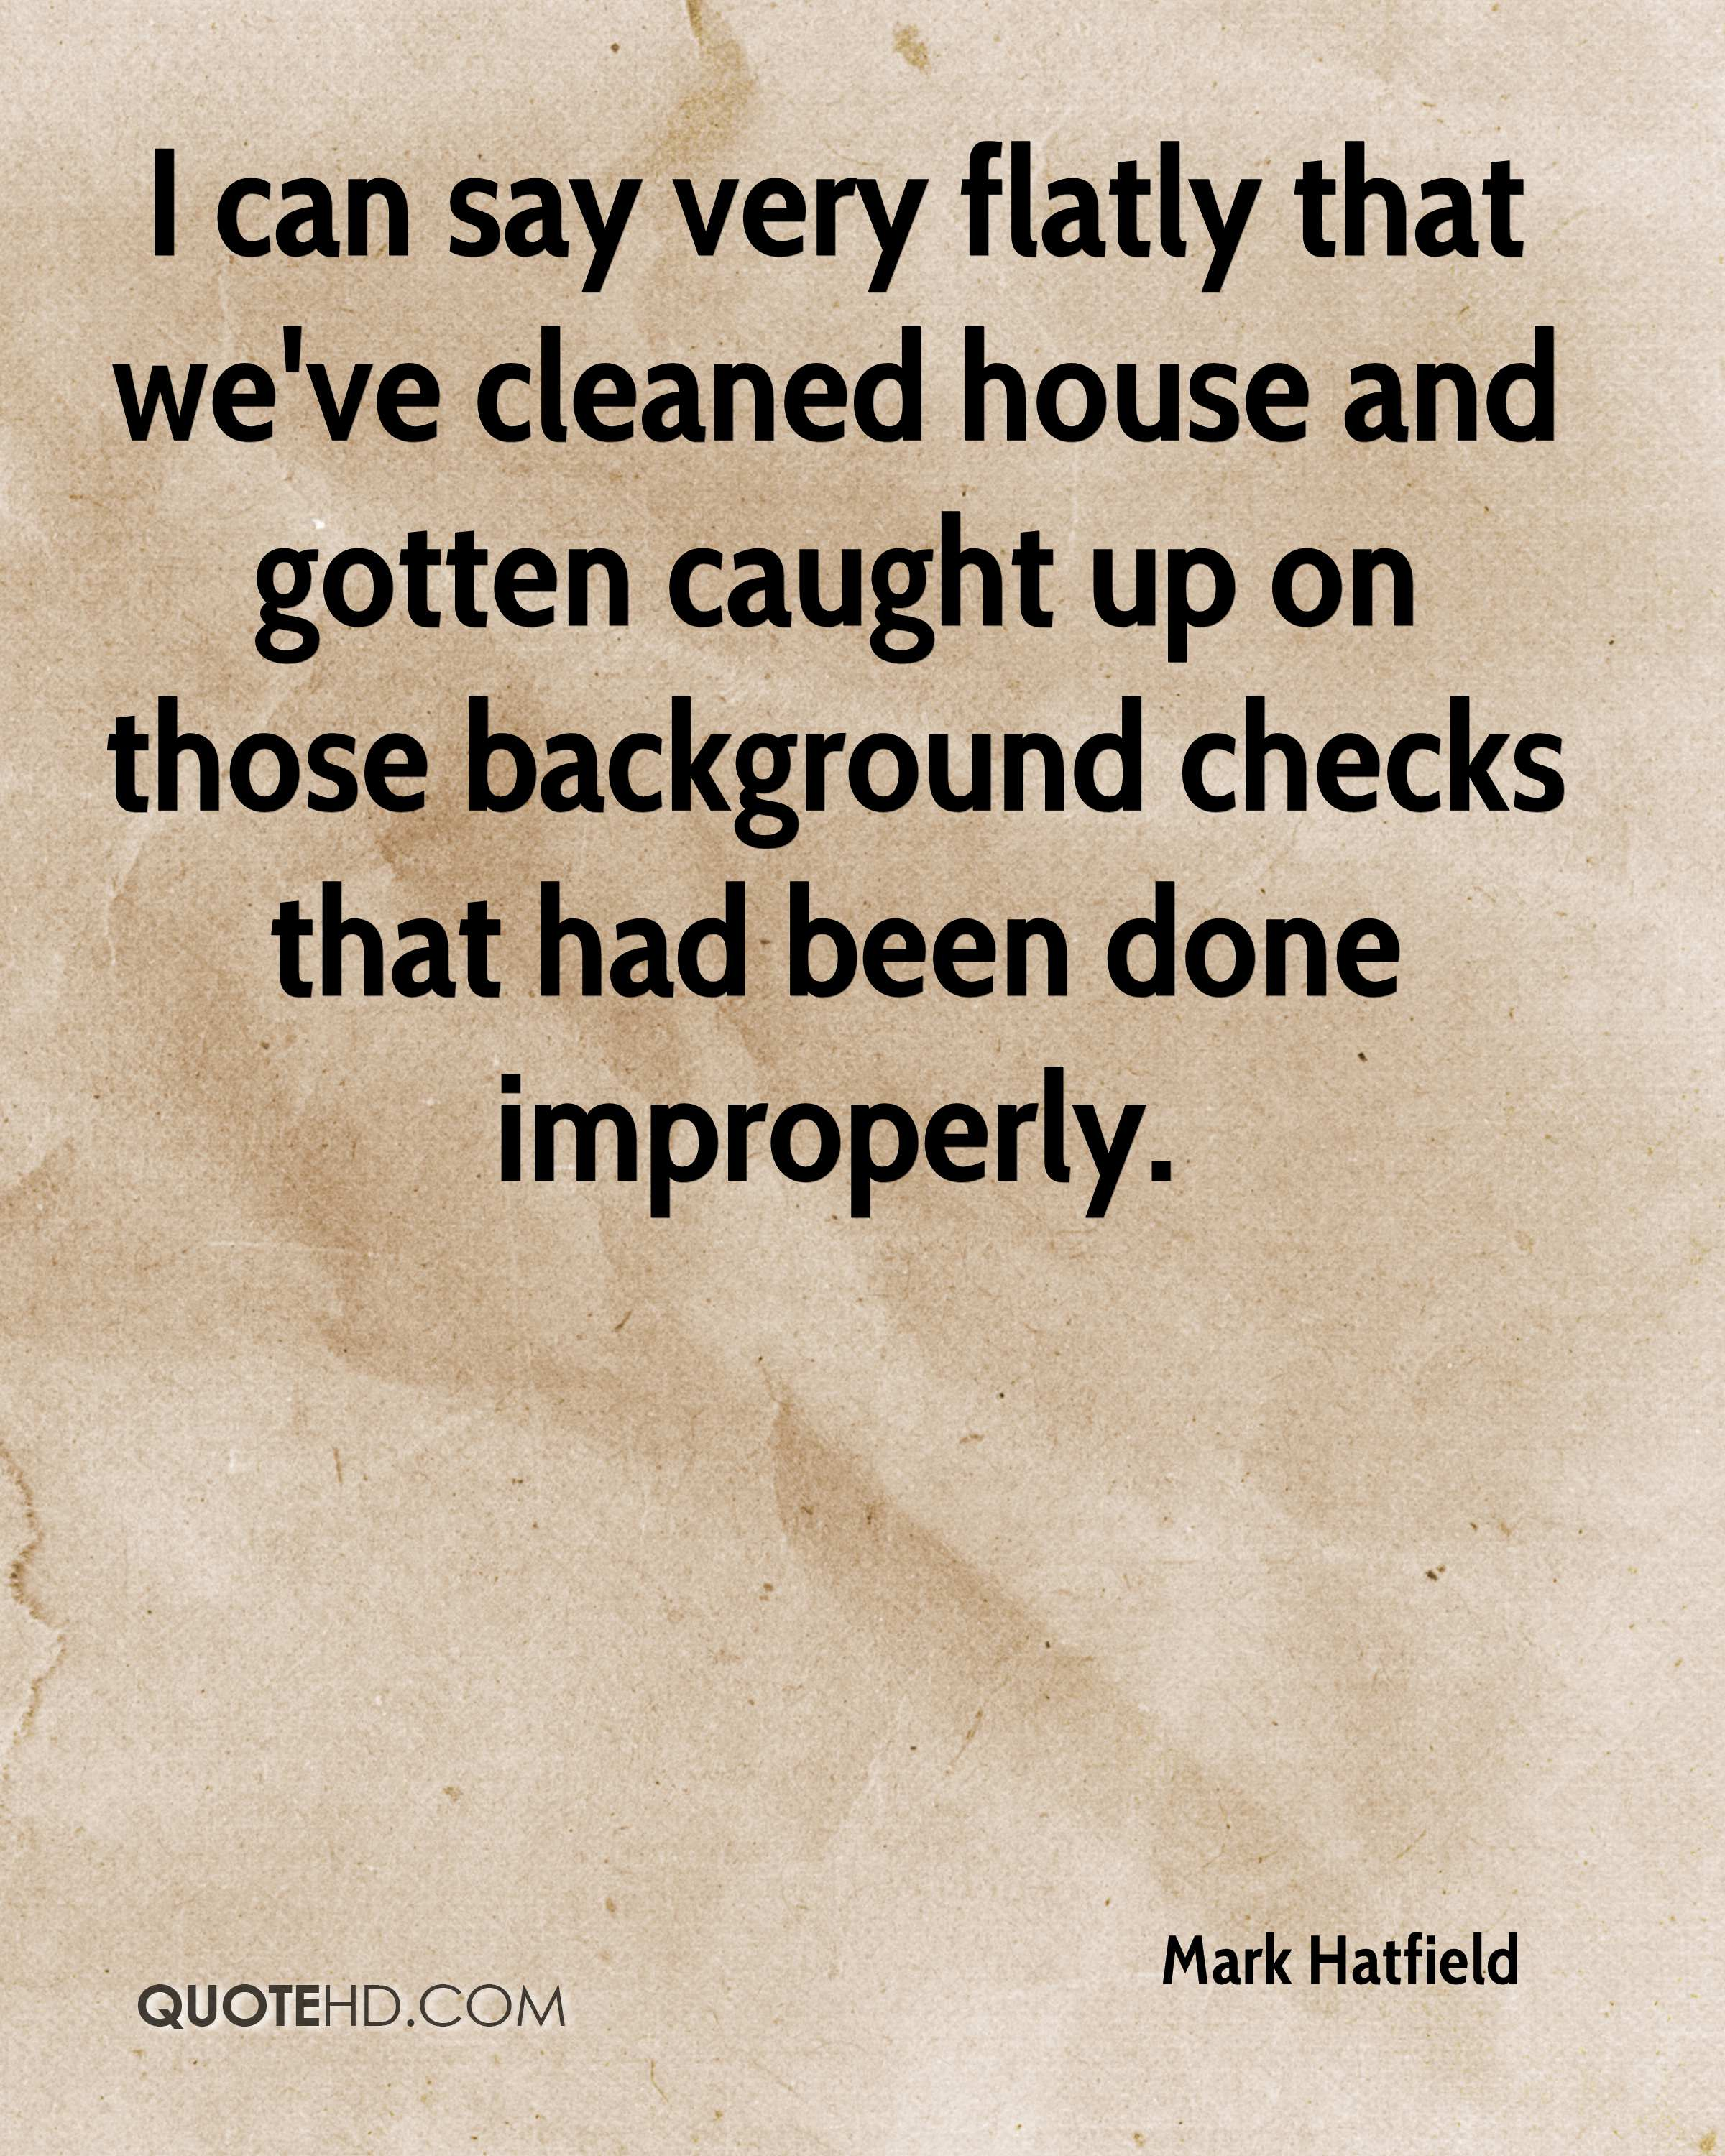 I can say very flatly that we've cleaned house and gotten caught up on those background checks that had been done improperly.